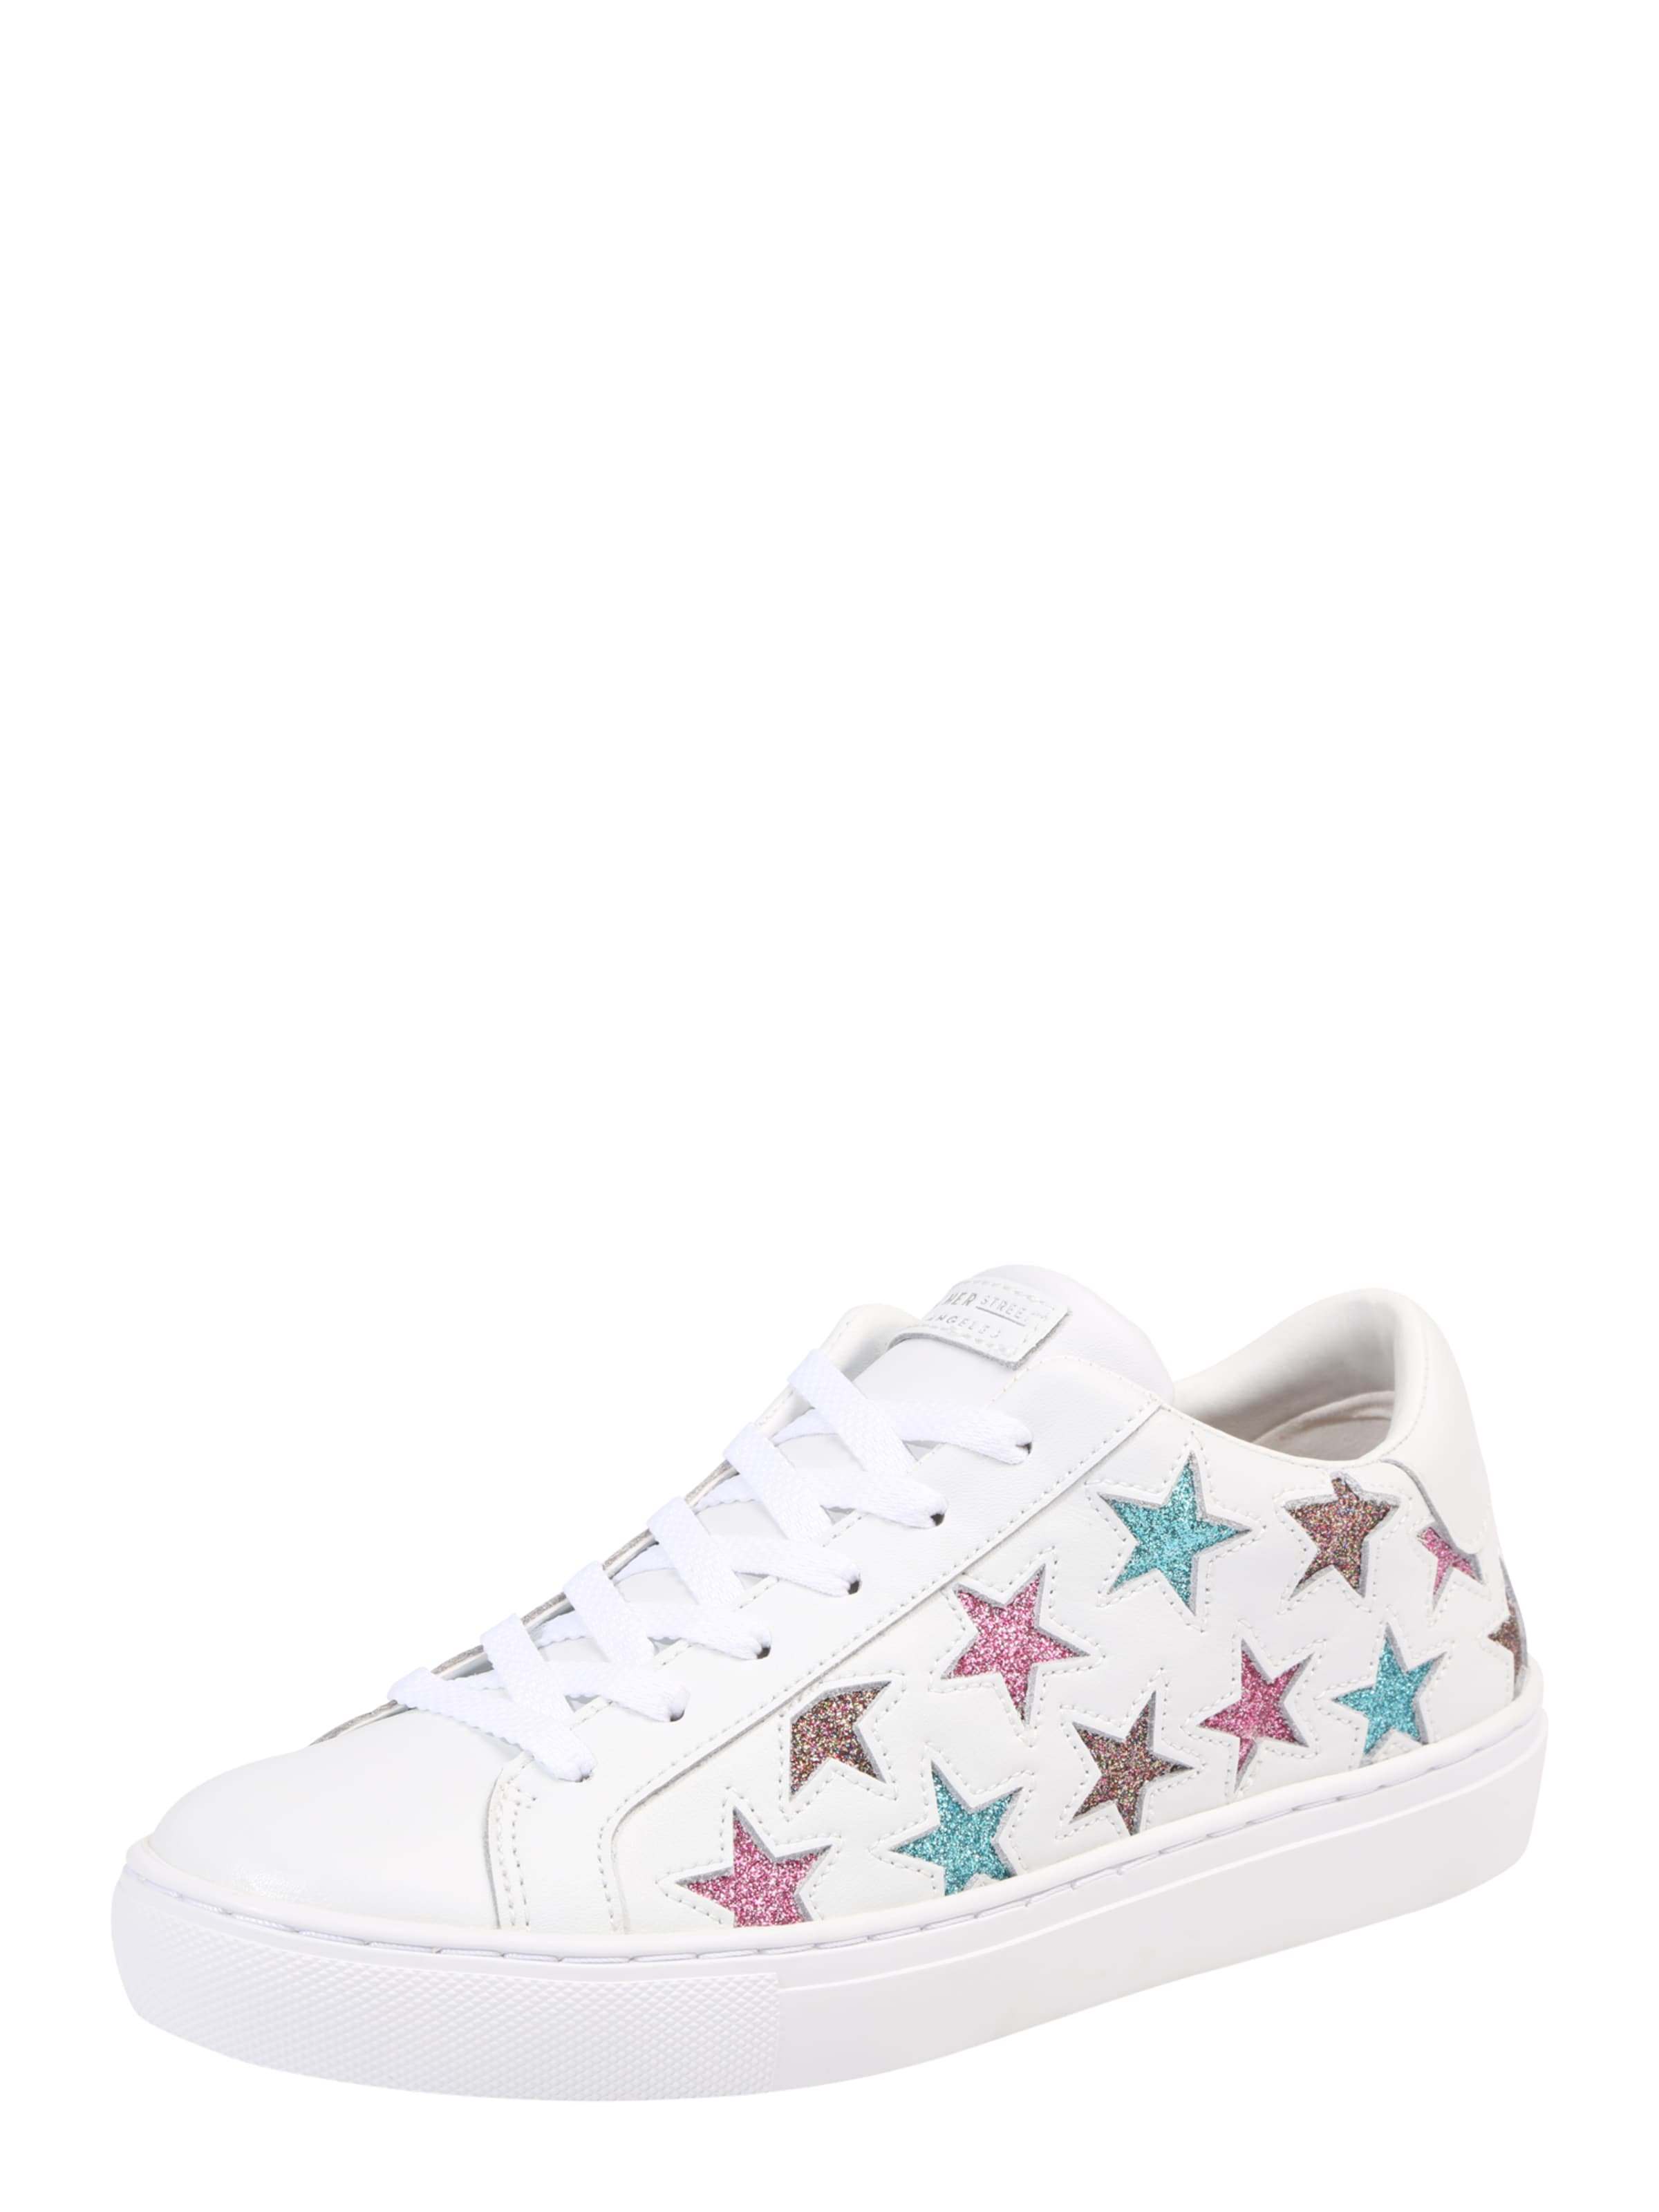 SKECHERS Sneaker SIDE STREET - STAR SIDE